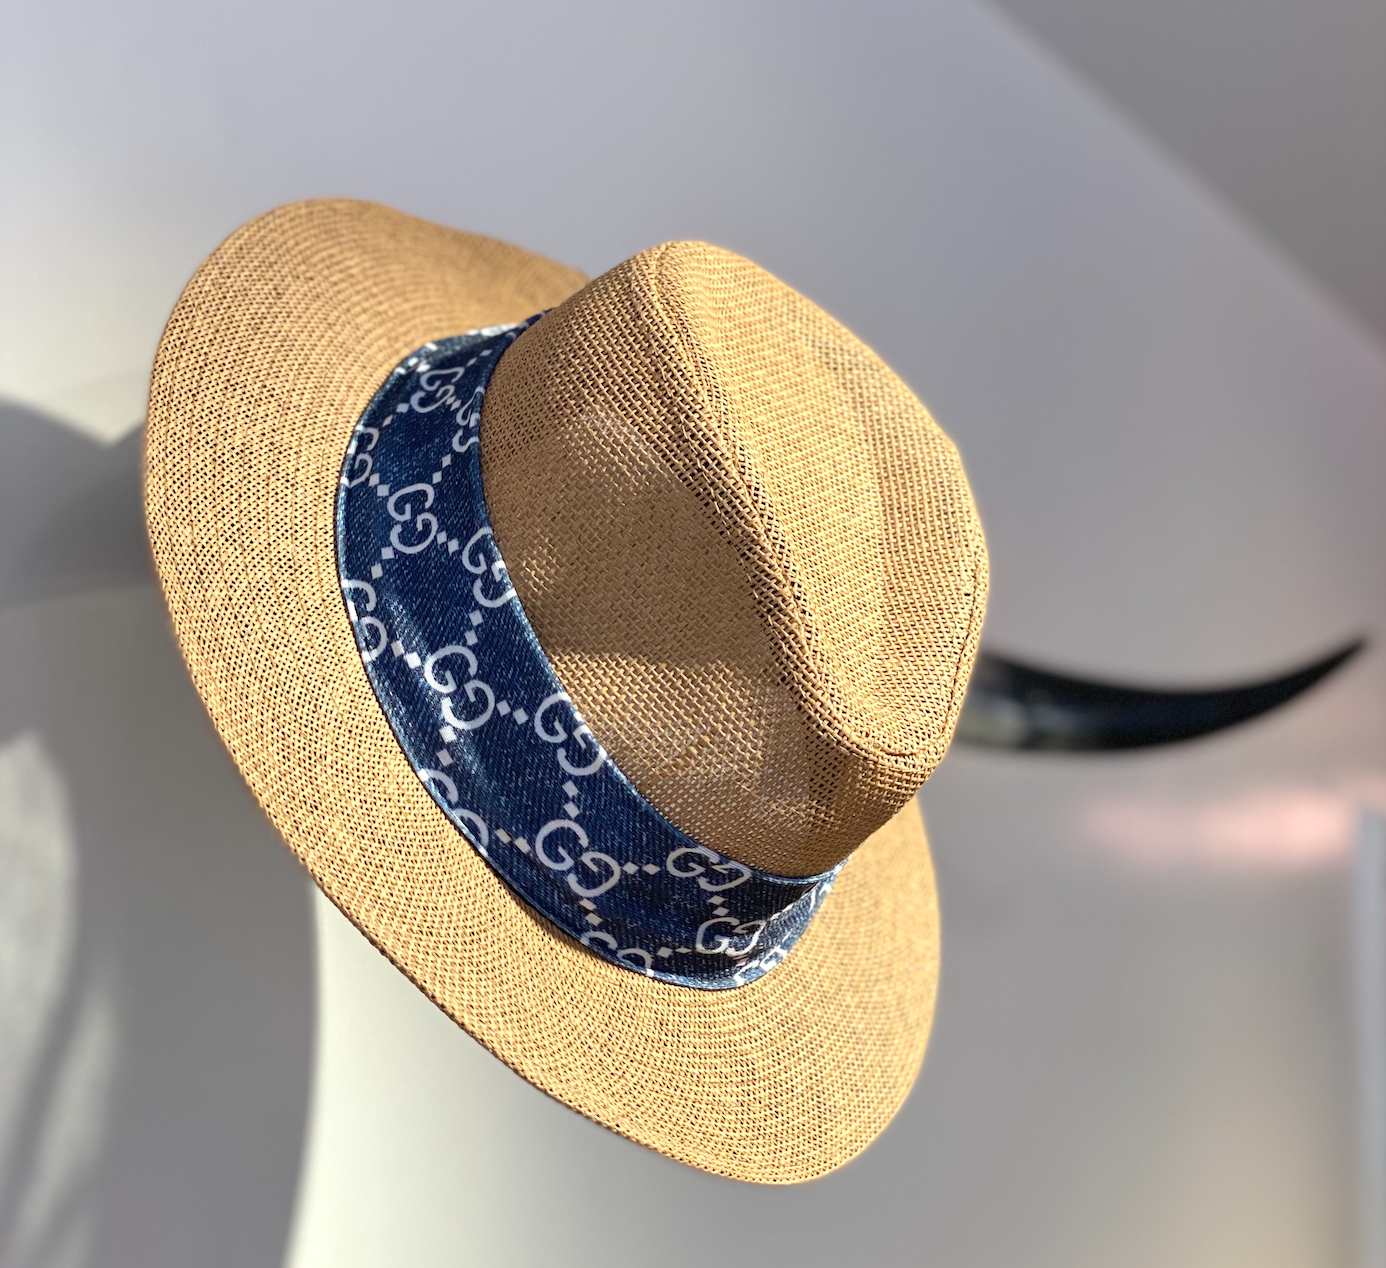 Gucci-Inspired Hat